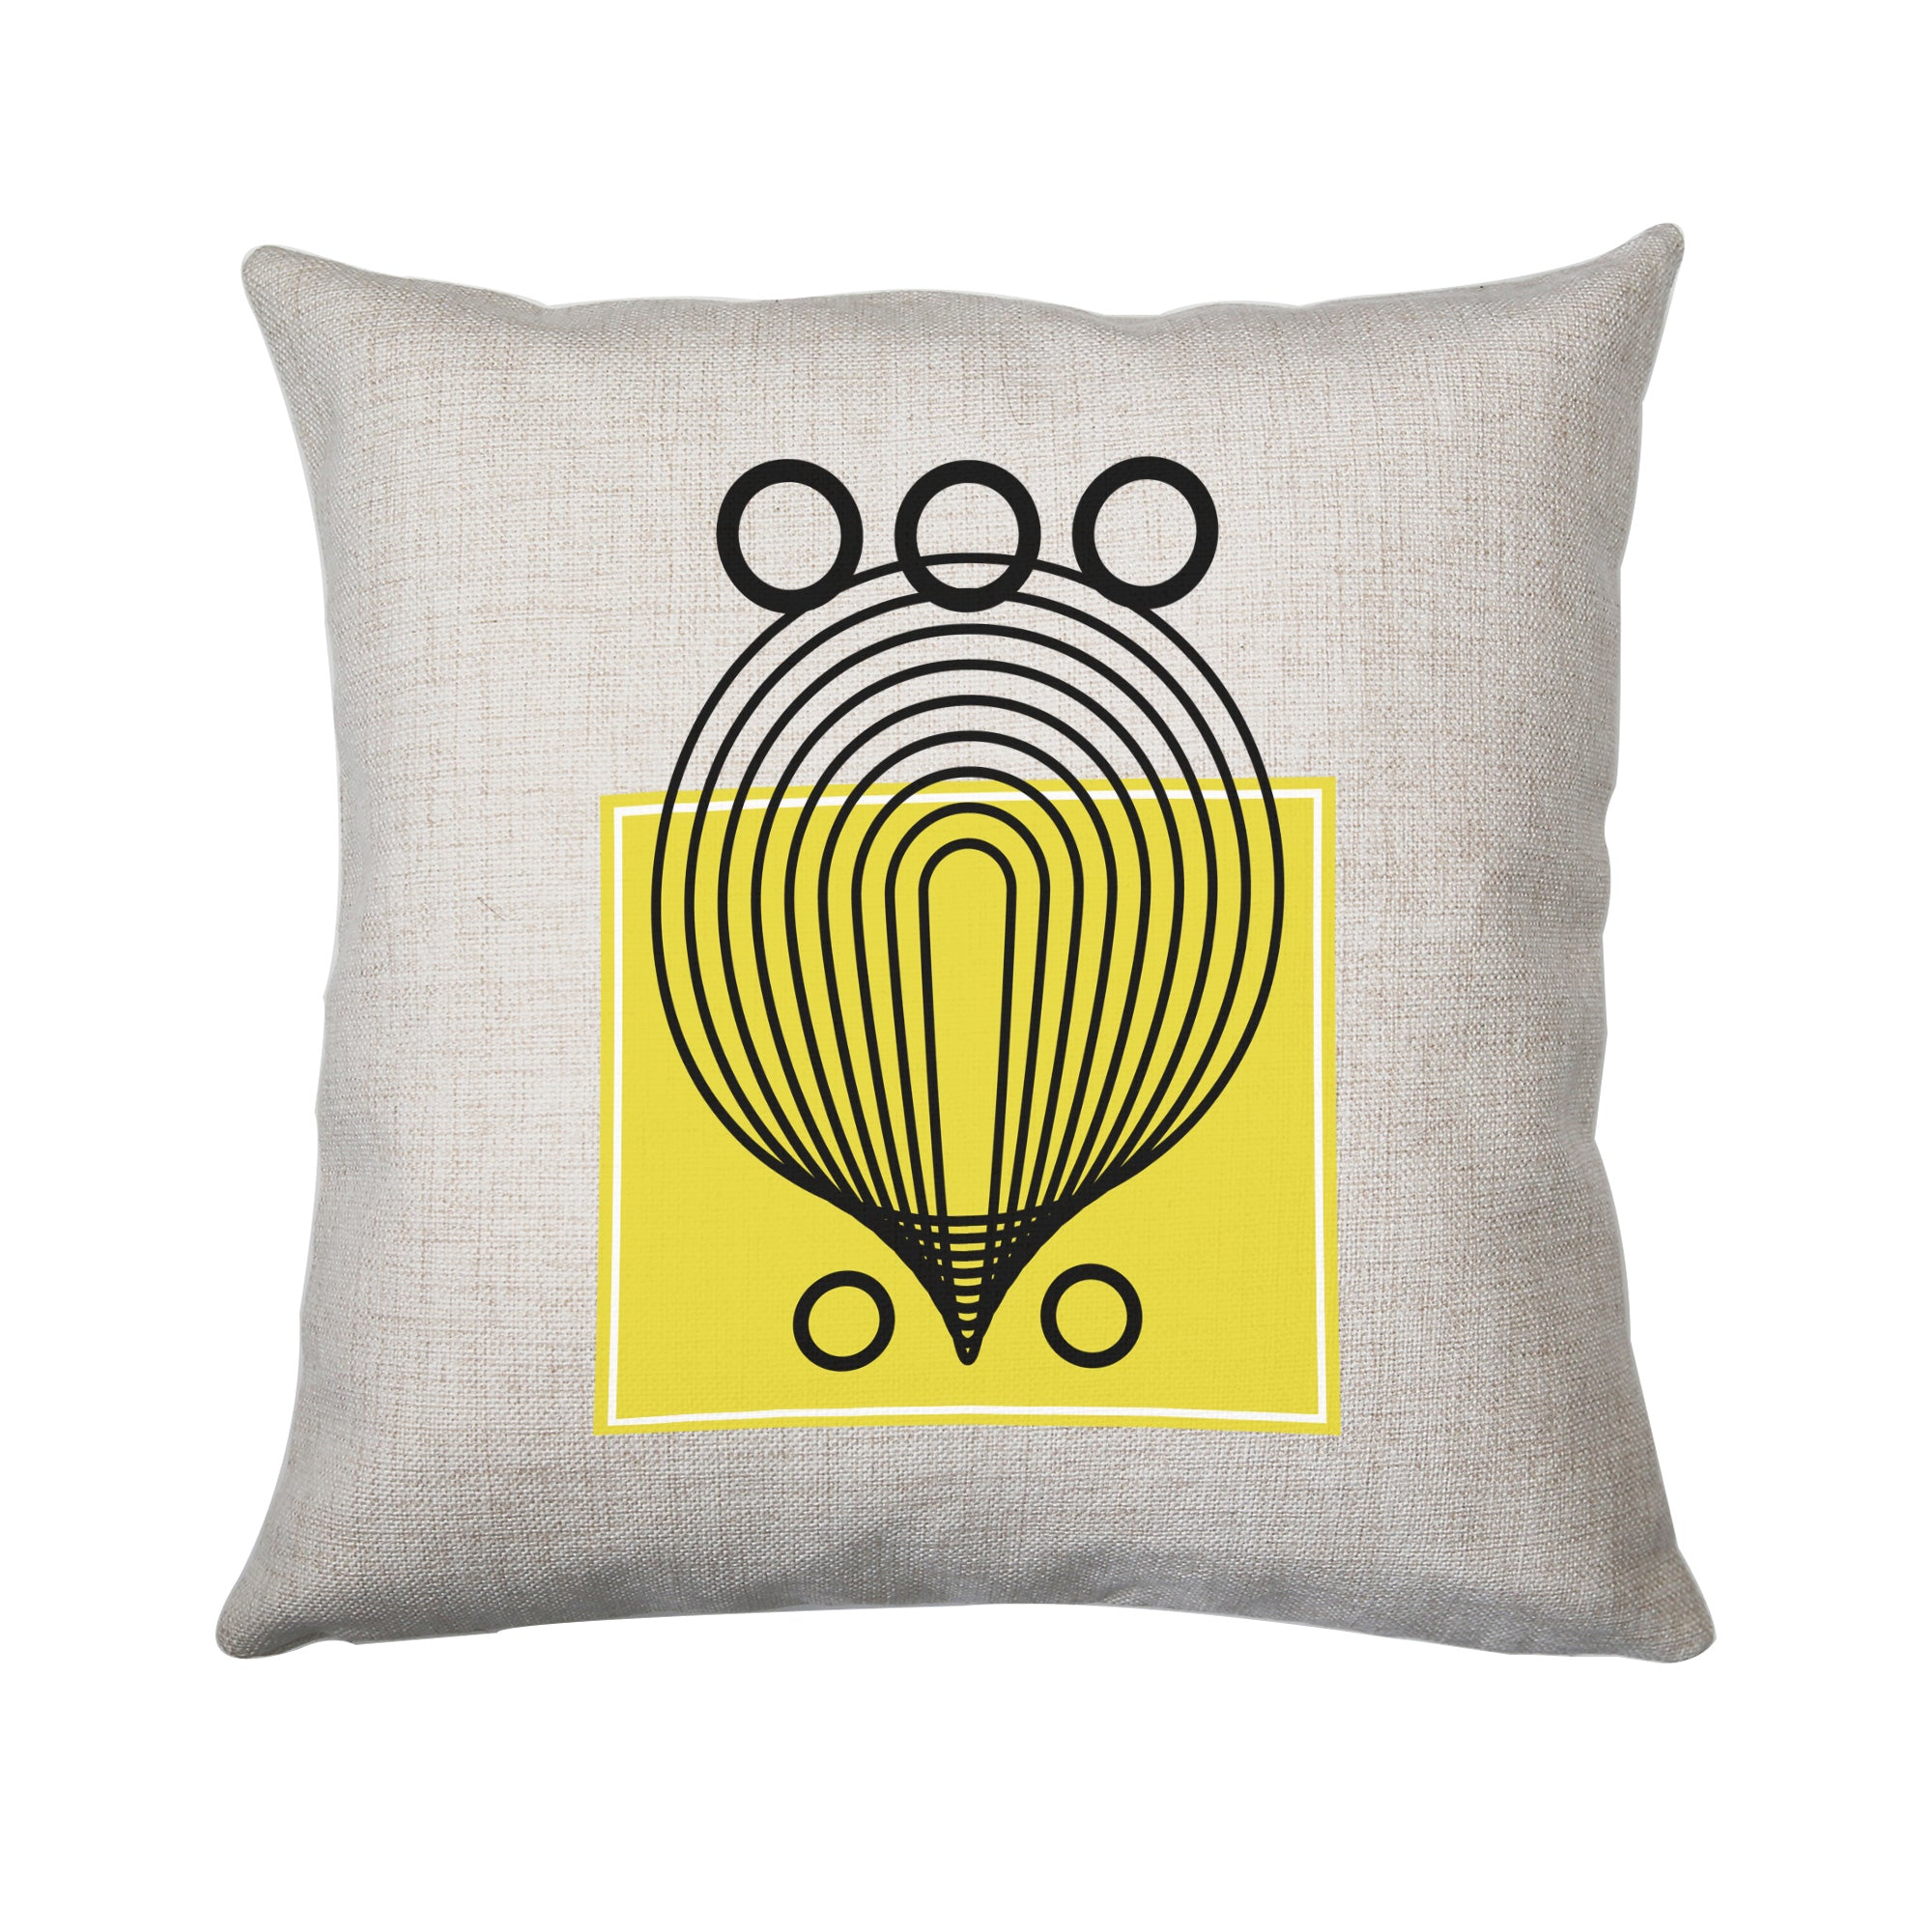 Geometric abstract shapes cushion